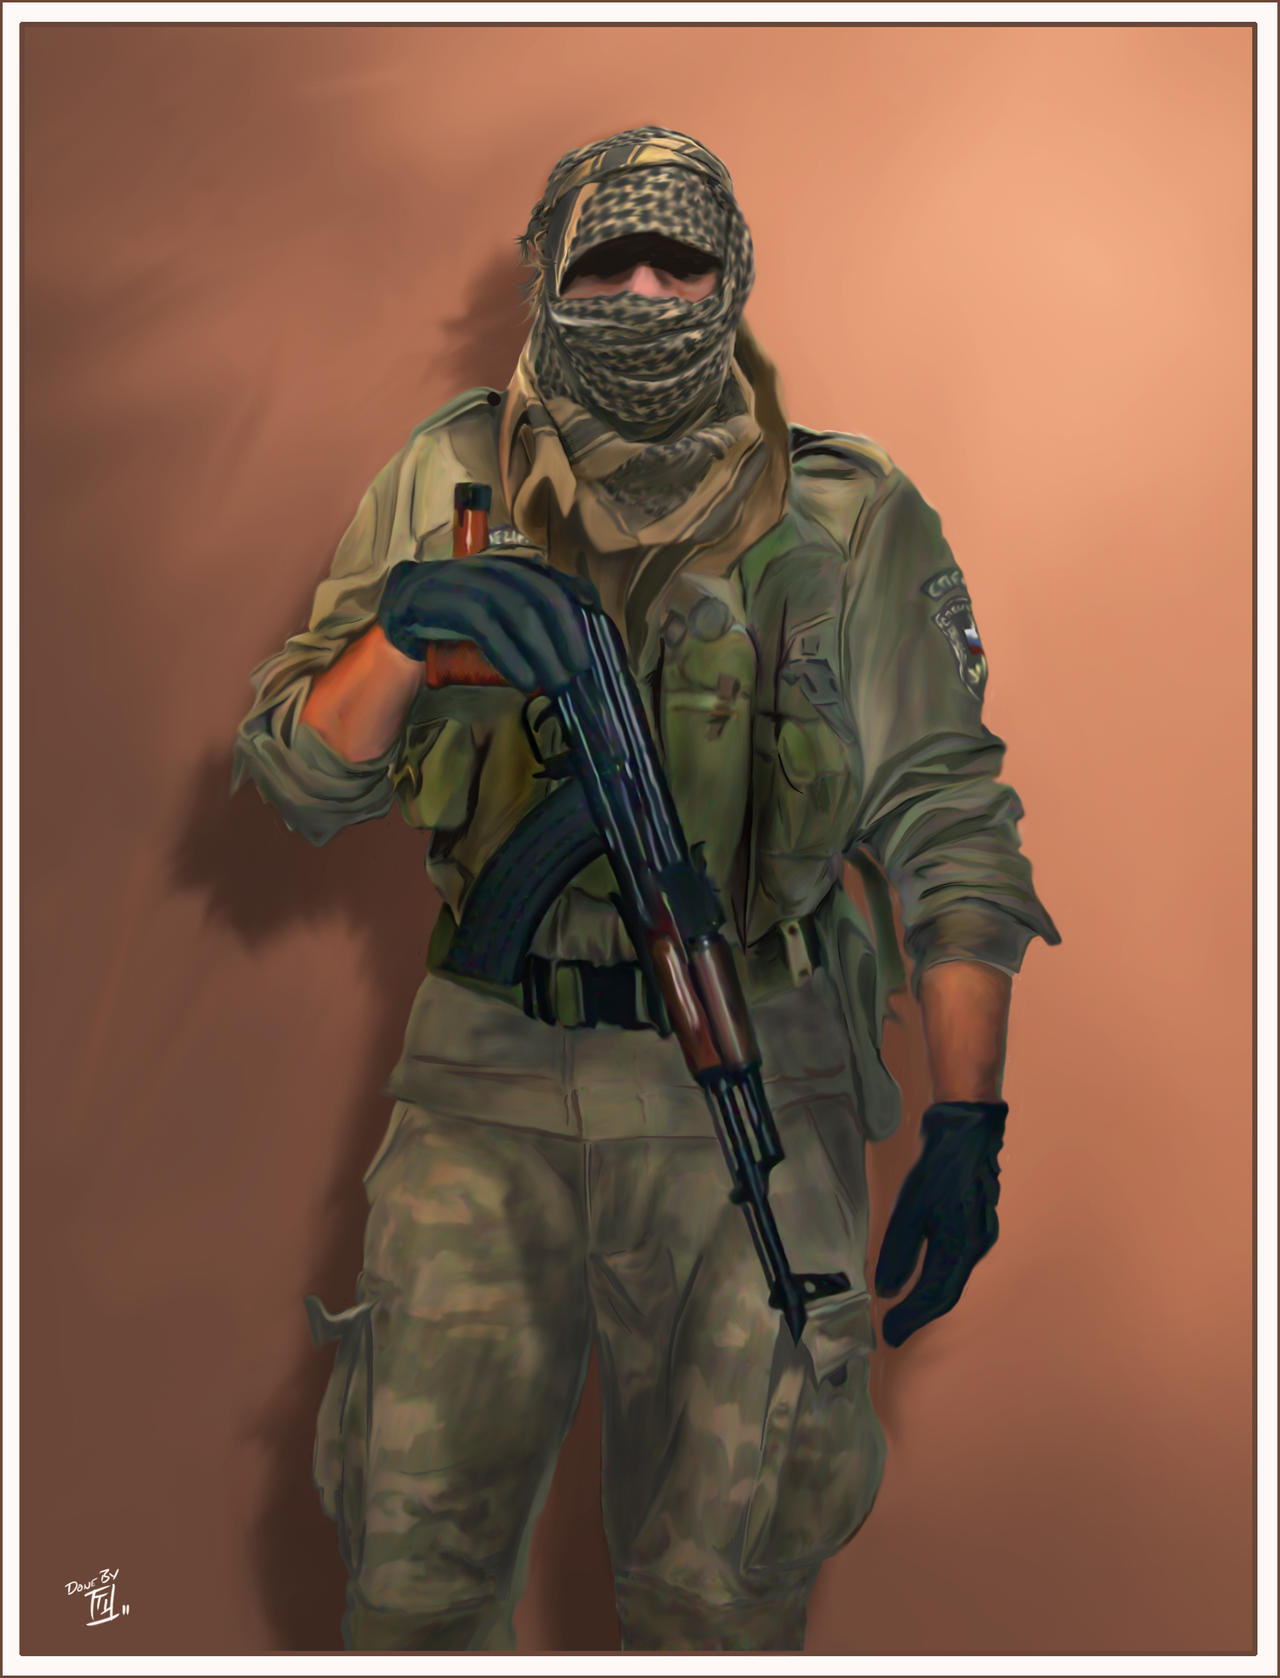 Russian Spetsnaz 2004 by KOKORONIN